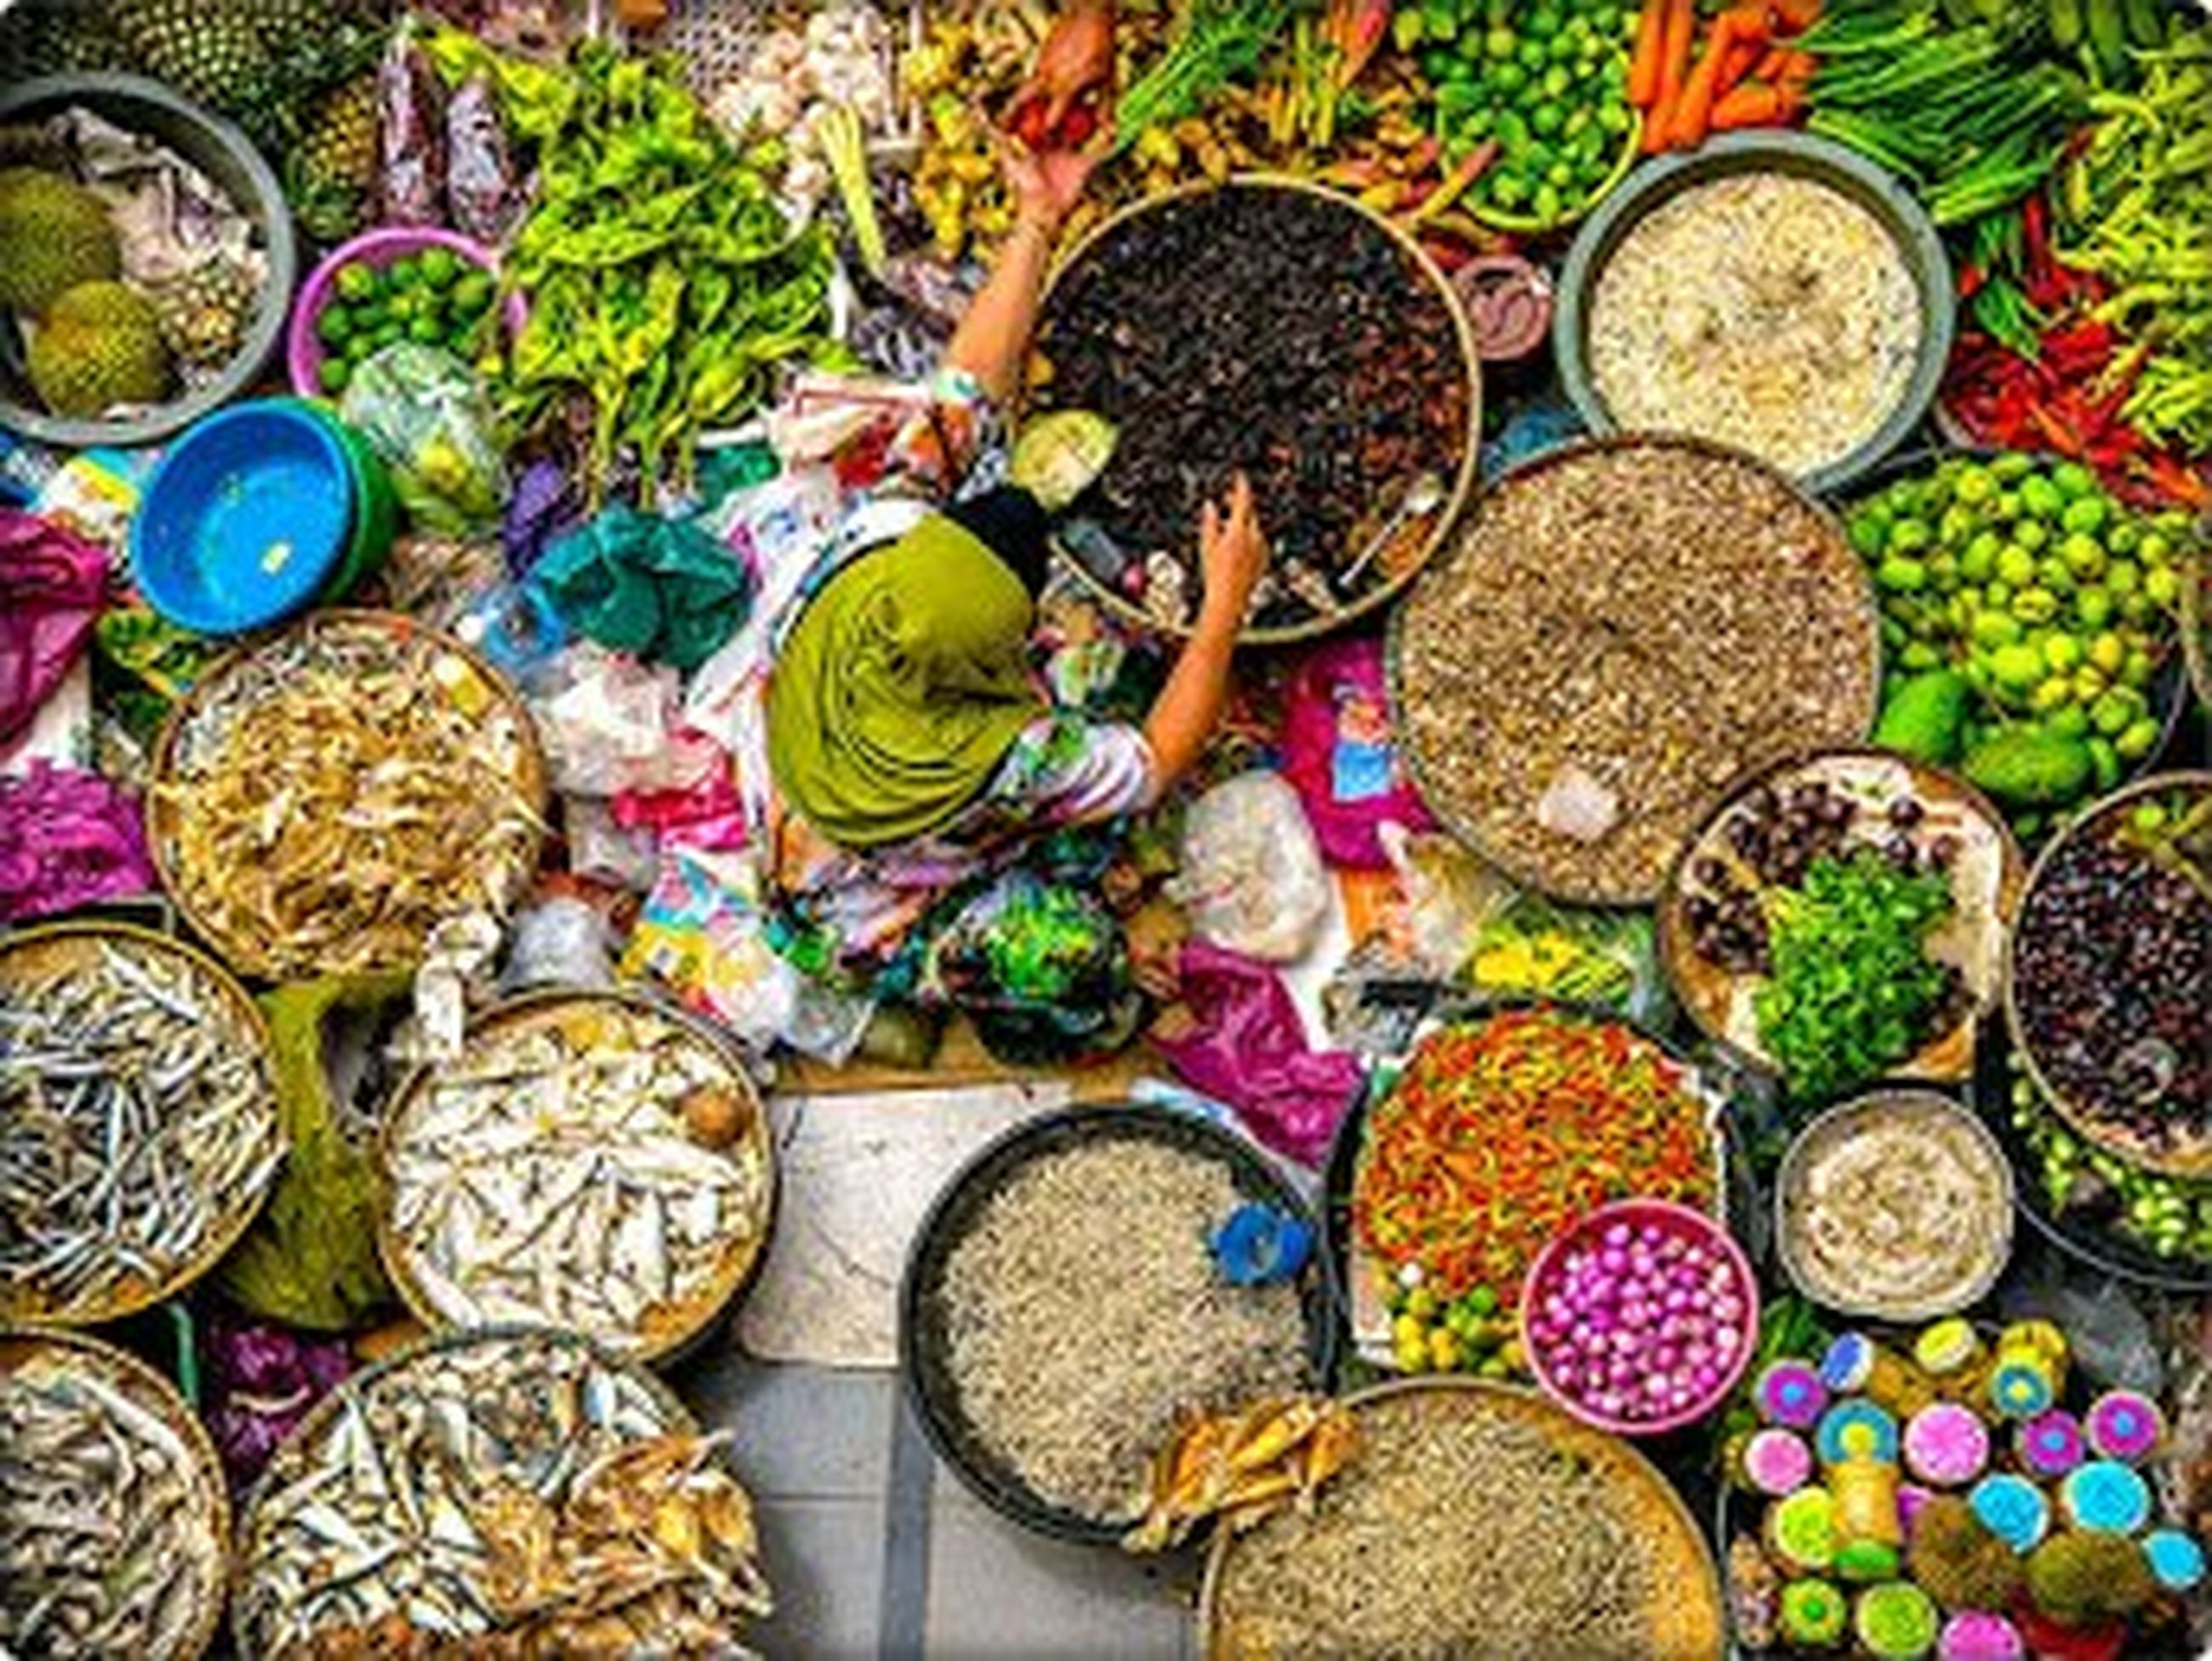 variation, abundance, large group of objects, choice, multi colored, for sale, high angle view, arrangement, retail, freshness, flower, market stall, collection, market, indoors, still life, various, potted plant, colorful, table